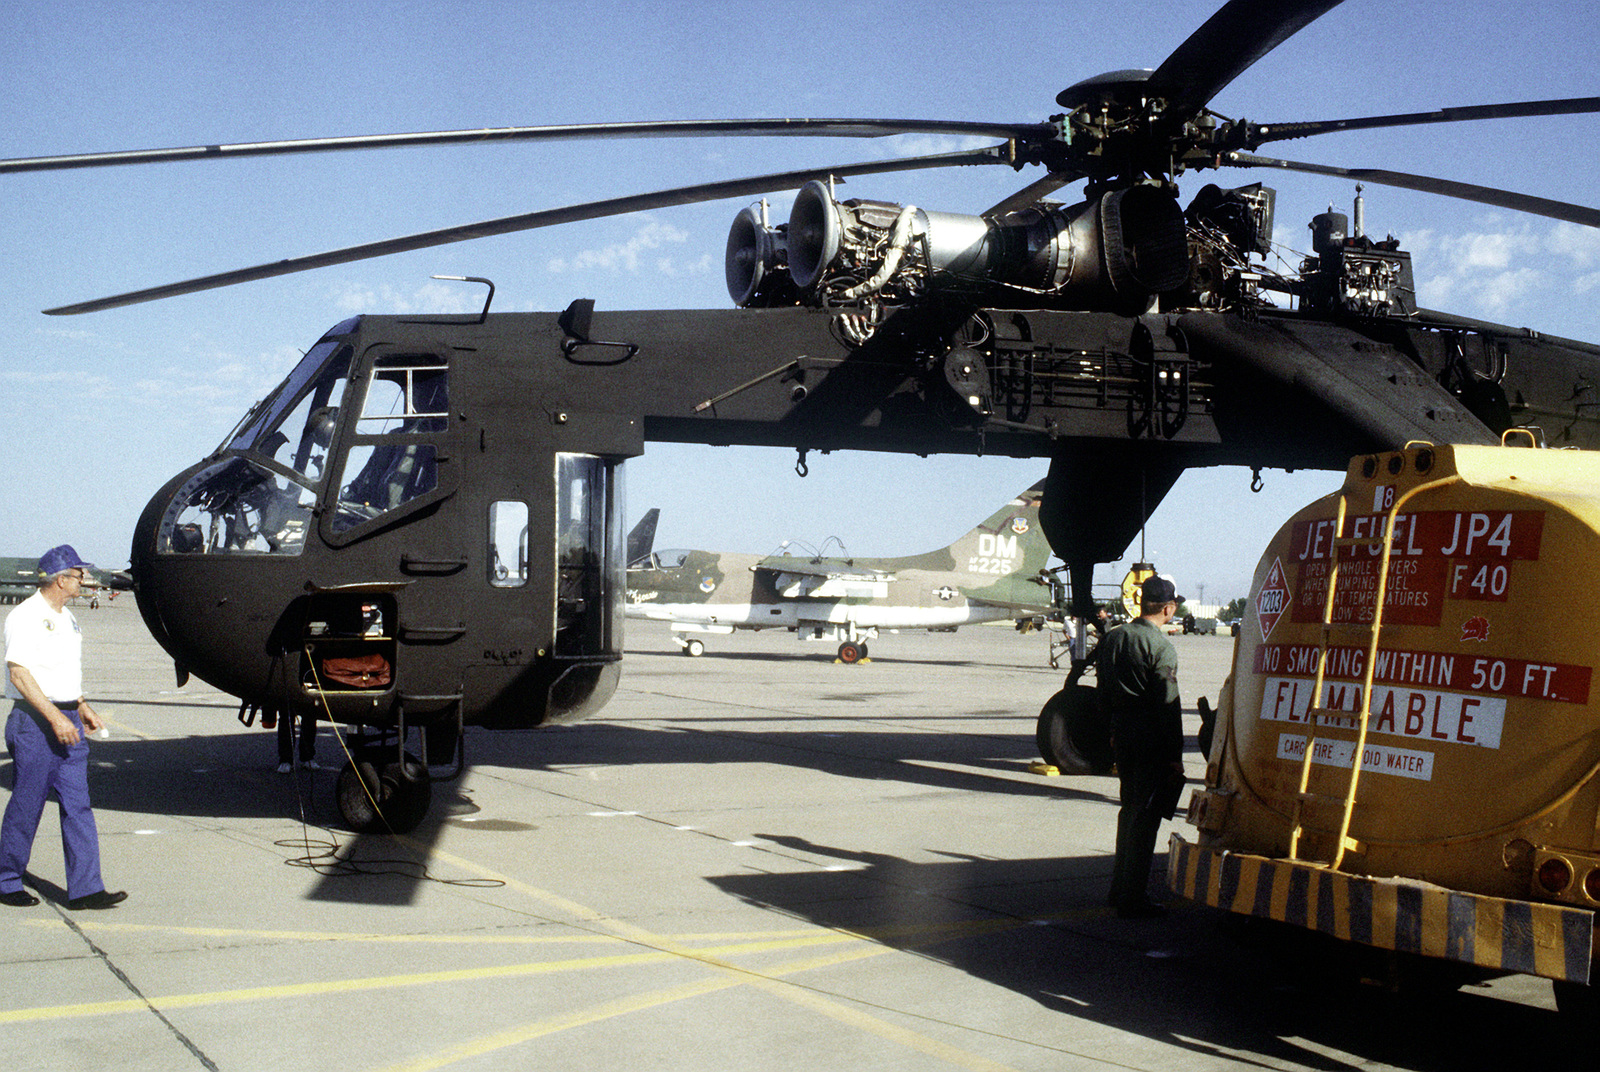 A CH-54 Tahre helicopter is refueled on the flight line before airlifting an A-7 Corsair II aircraft